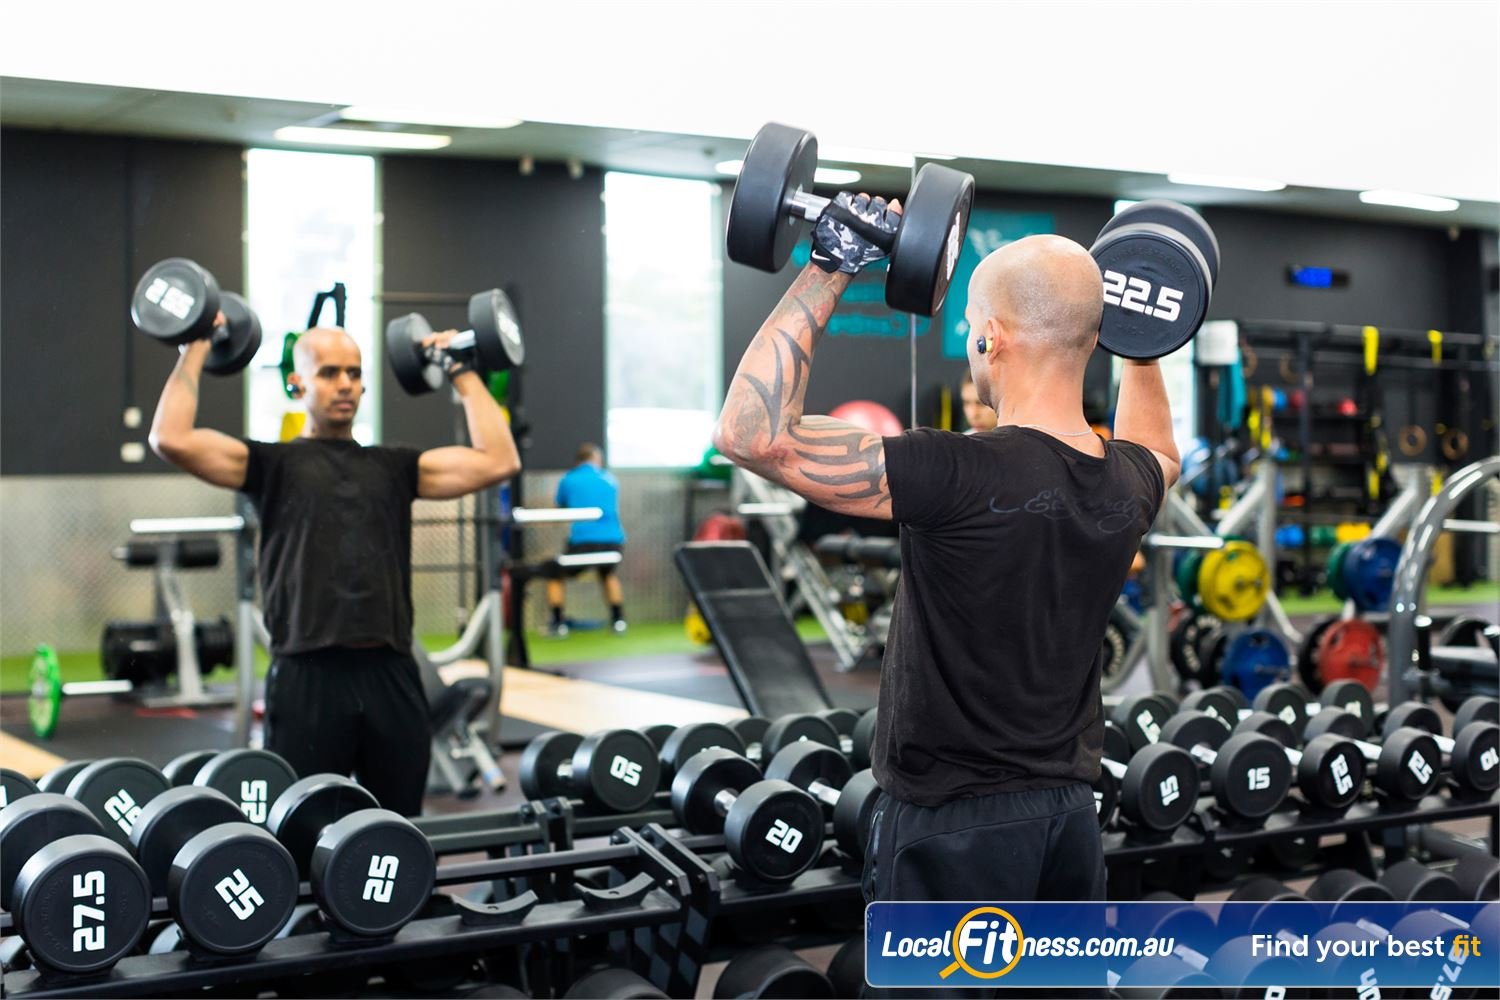 Reservoir Leisure Centre Near Thomastown Plenty of free-weights for your training needs.